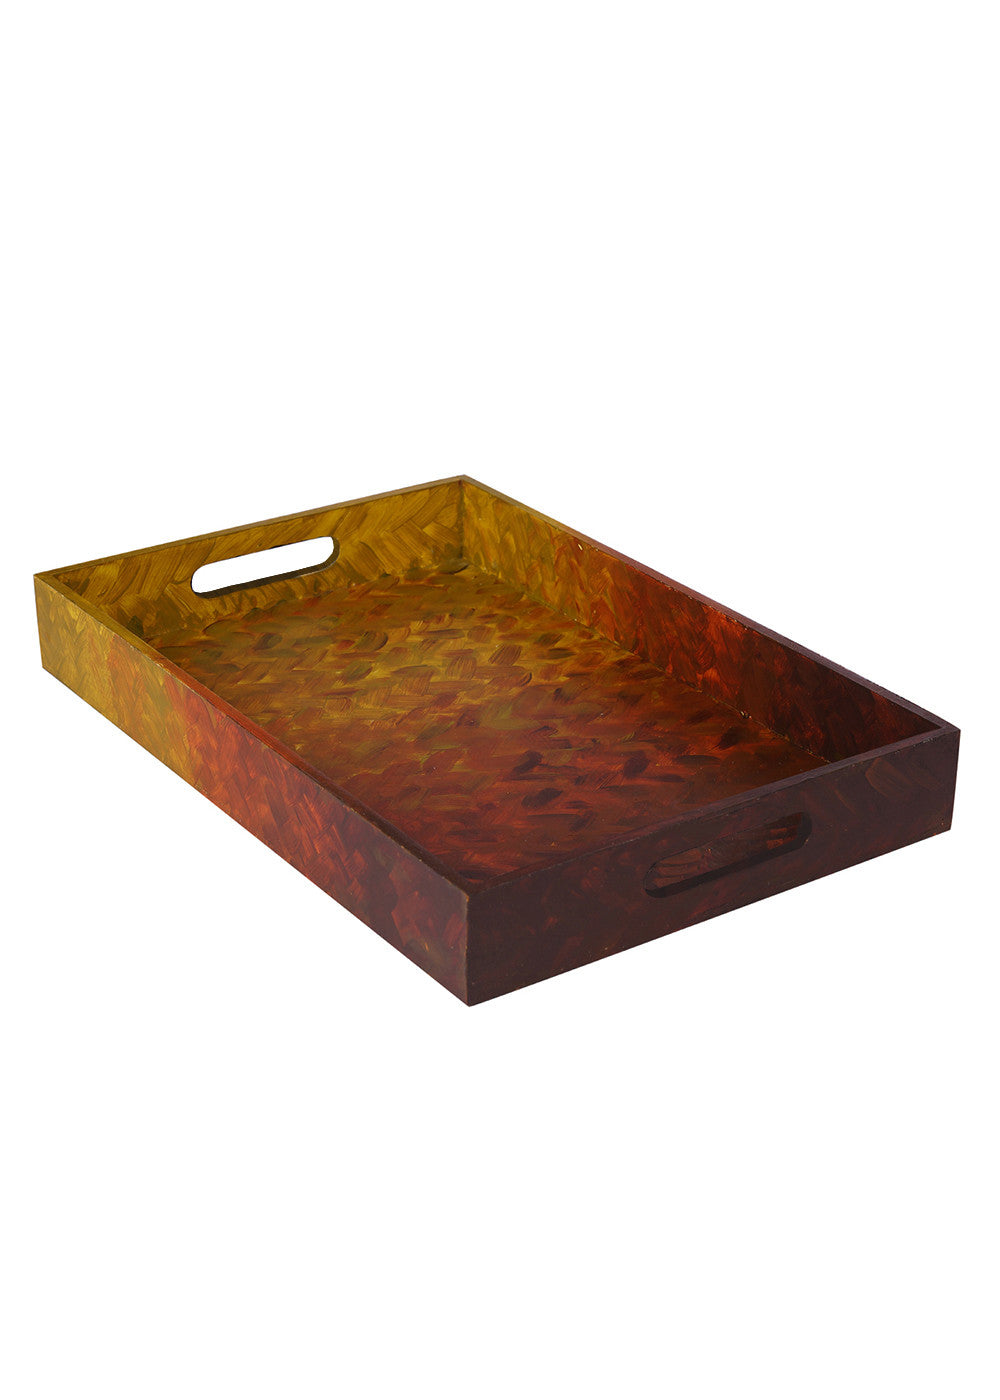 Hand-painted Sunkissed Earth Exotic Tray - RANGRAGE